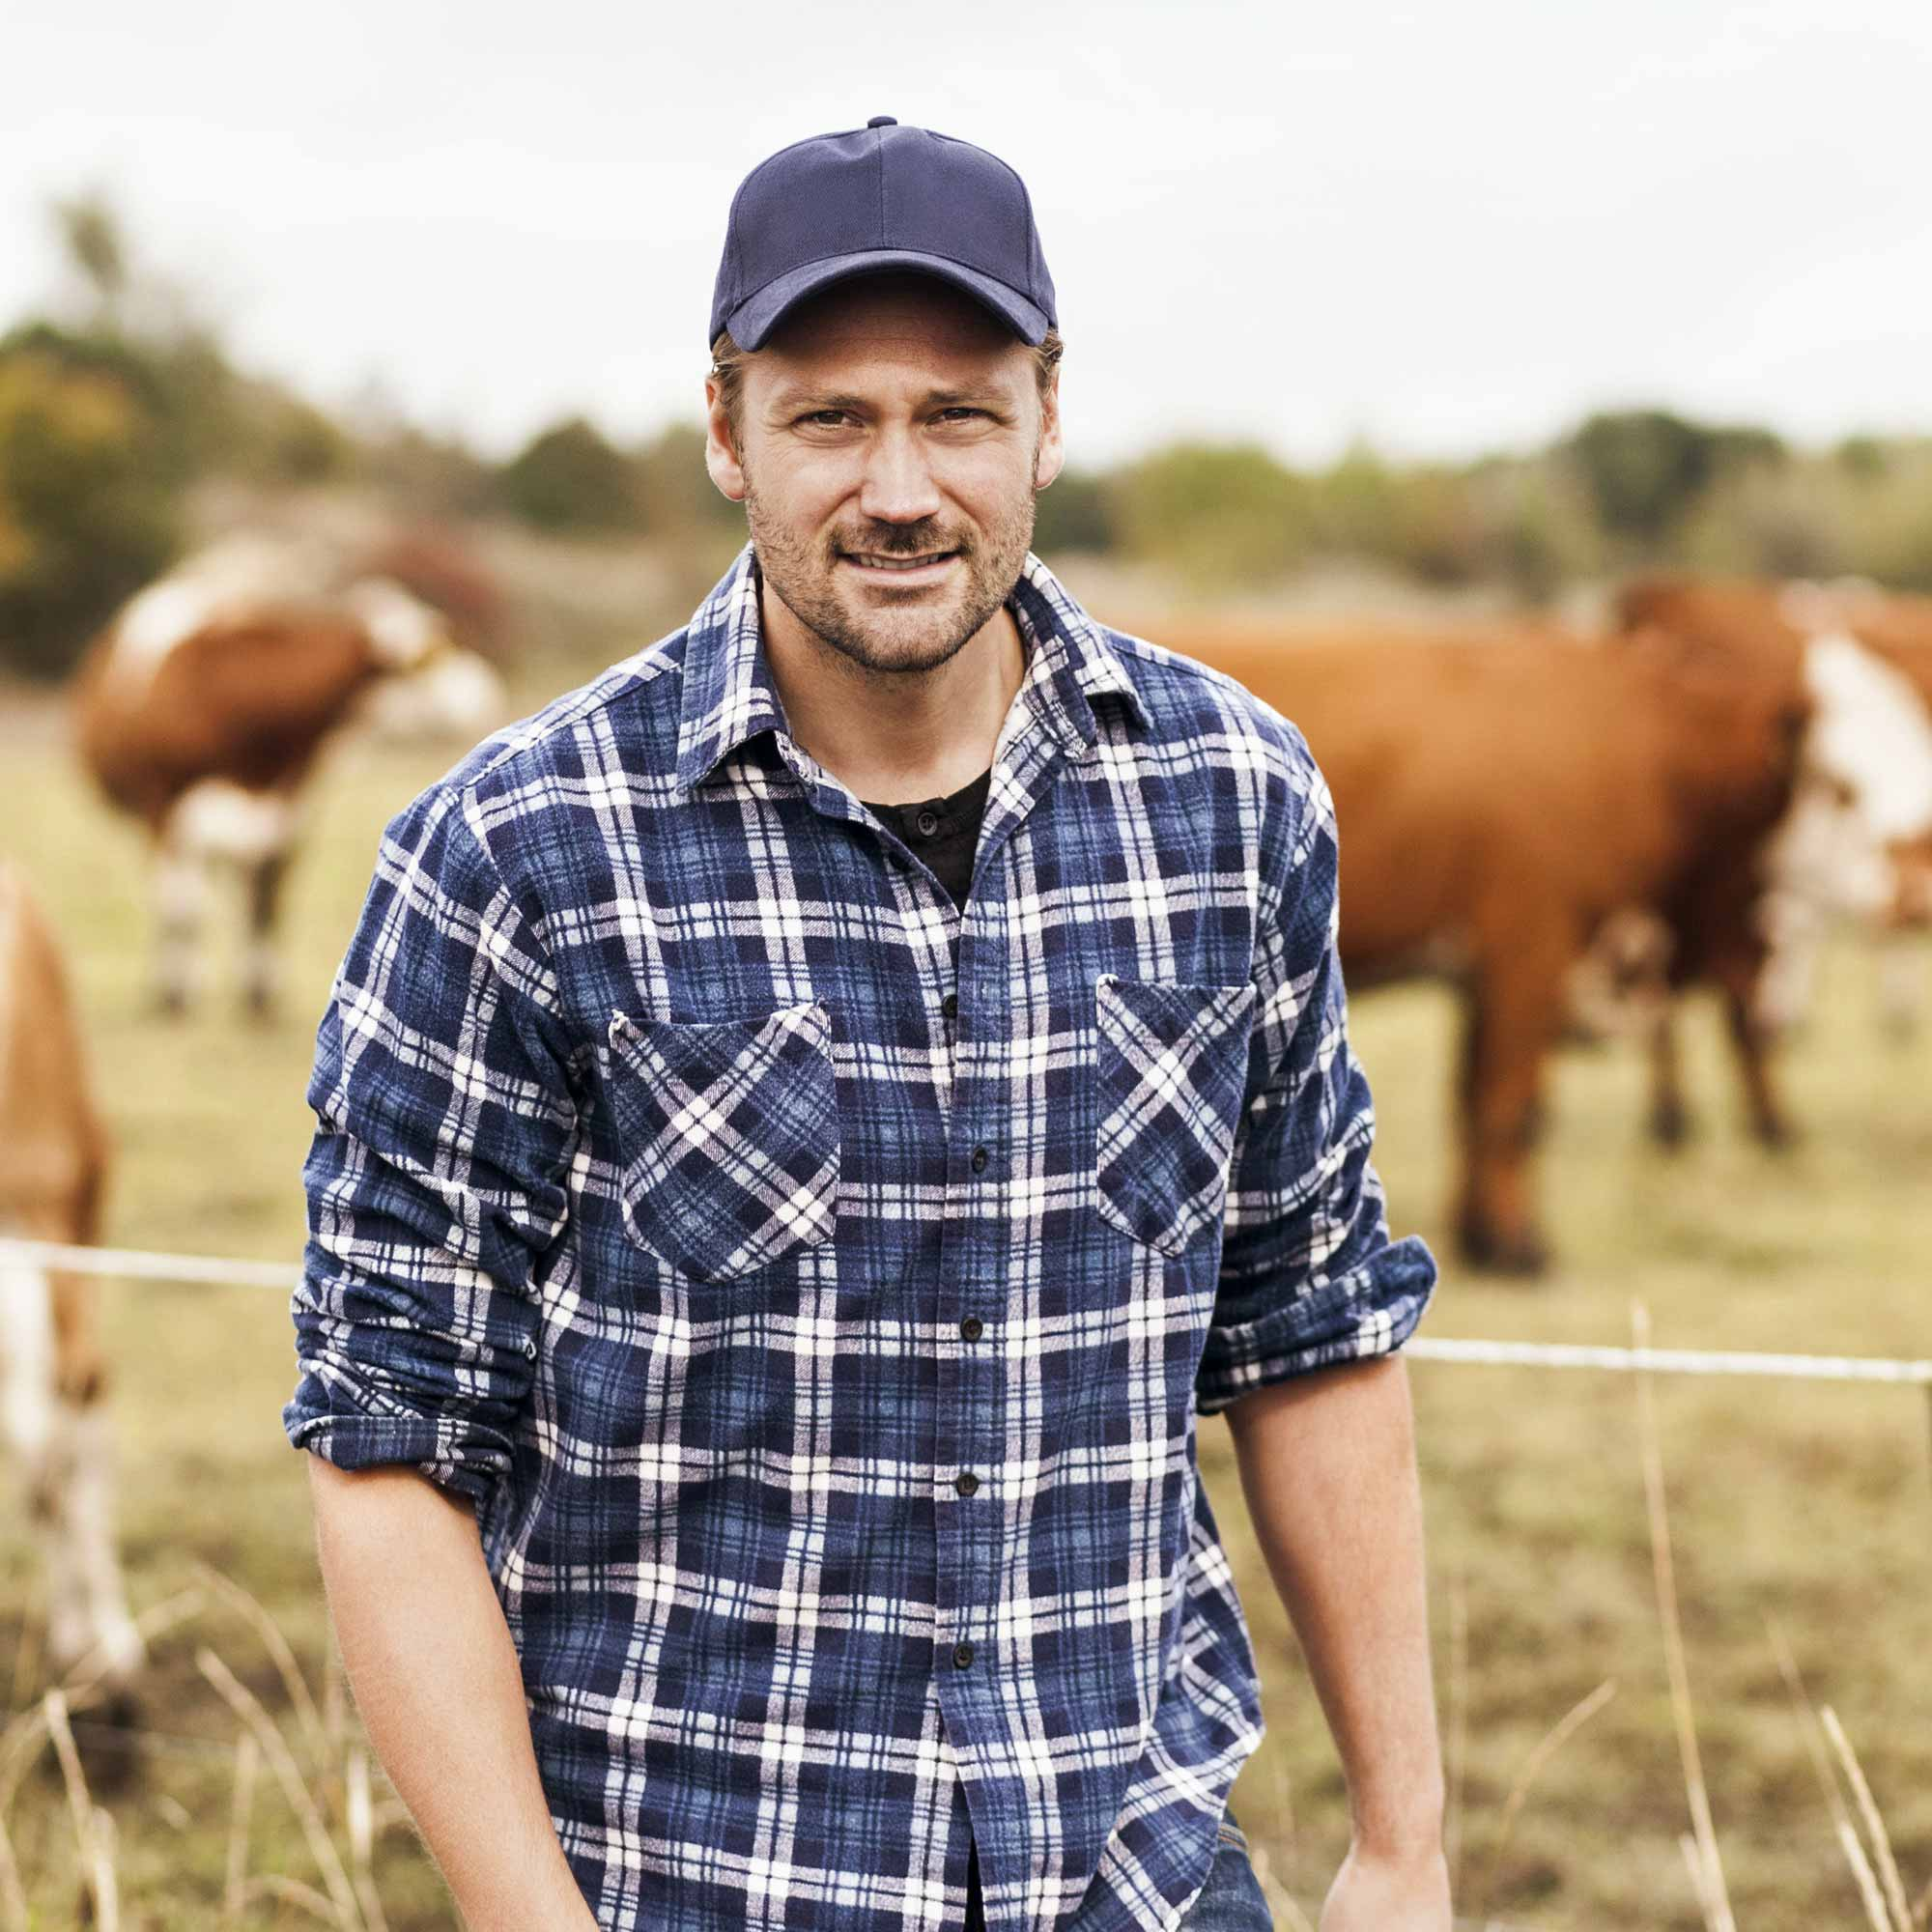 Farmer man in front of cows